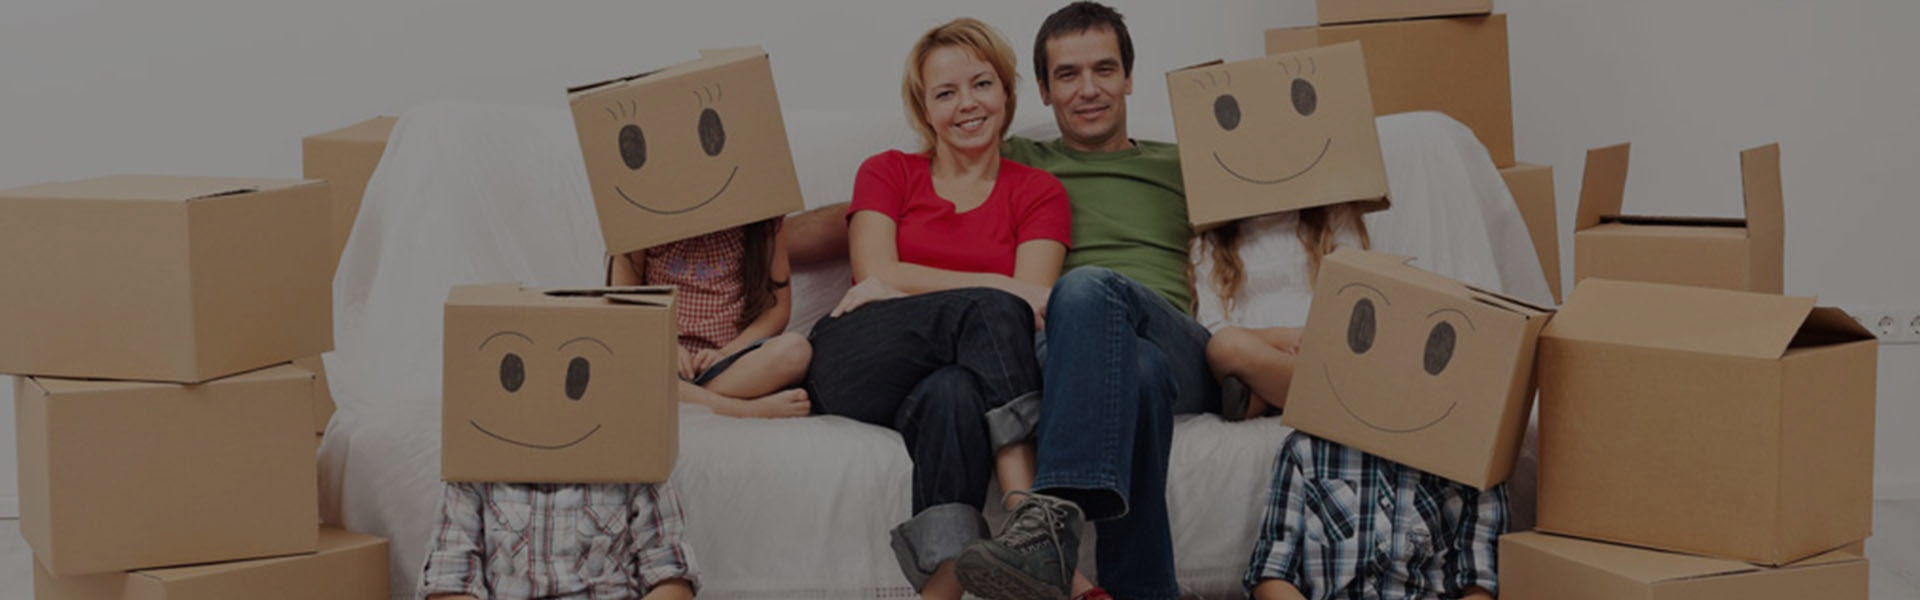 fort myers movers moving company naples fort myers. Black Bedroom Furniture Sets. Home Design Ideas